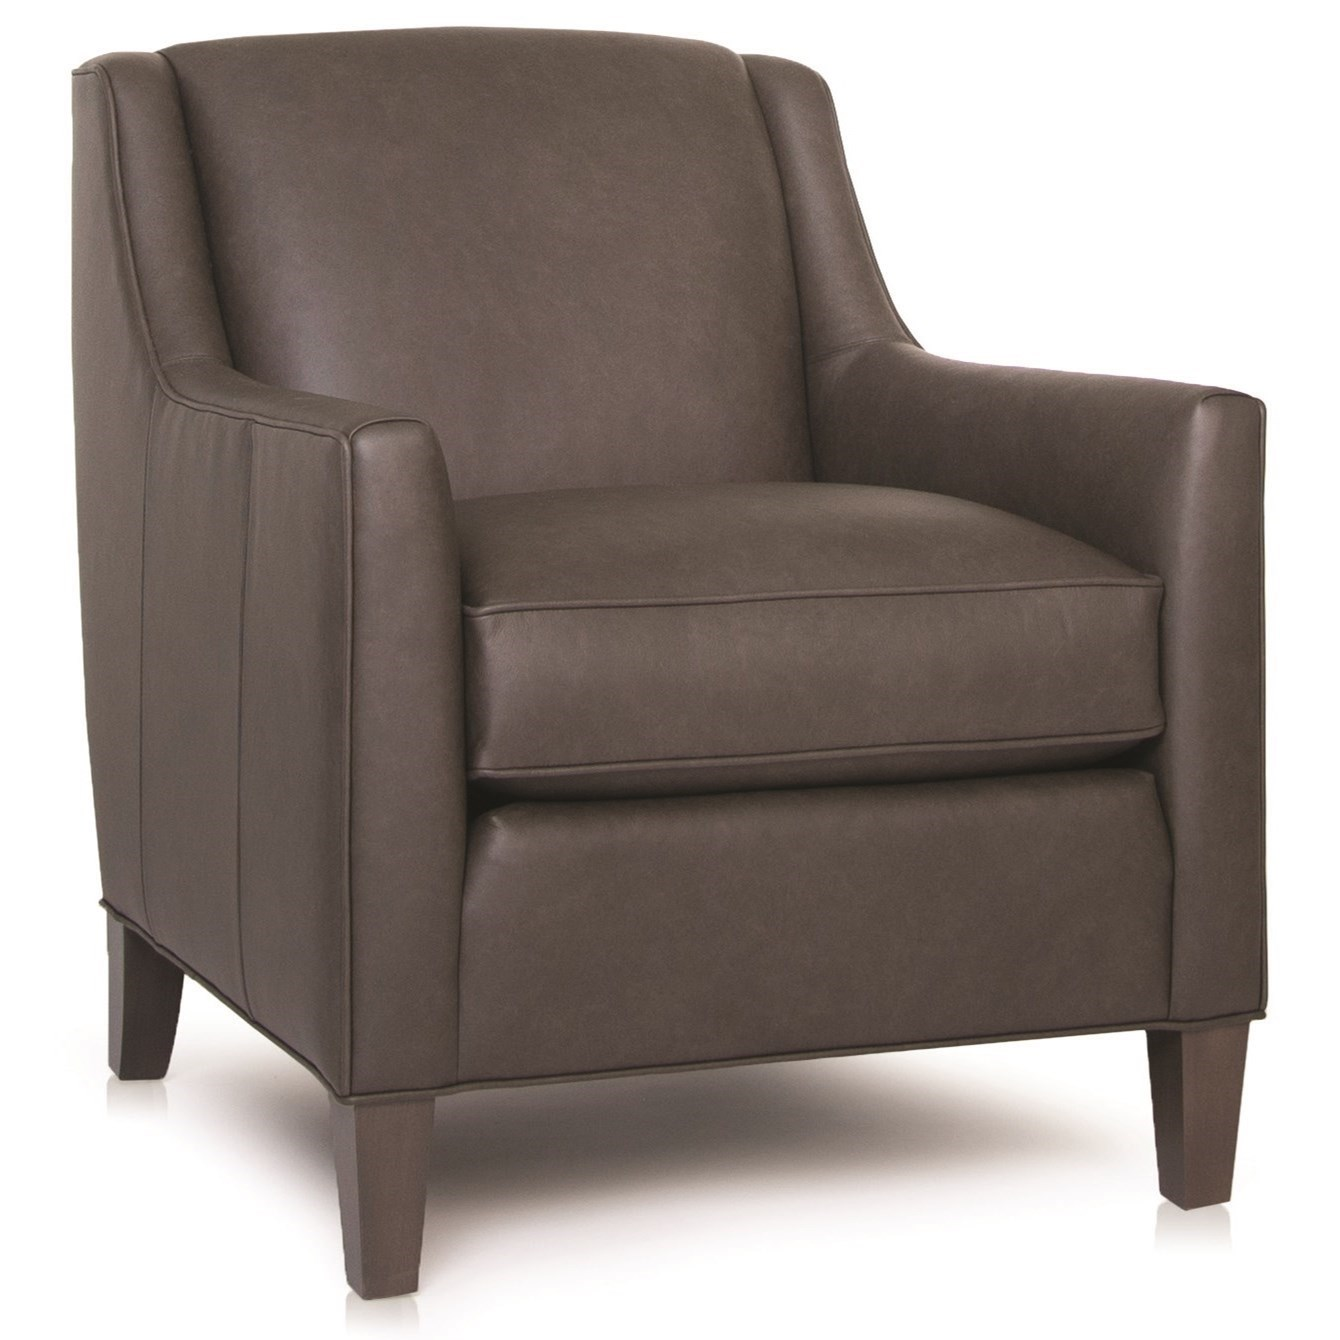 248 Chair by Smith Brothers at Turk Furniture